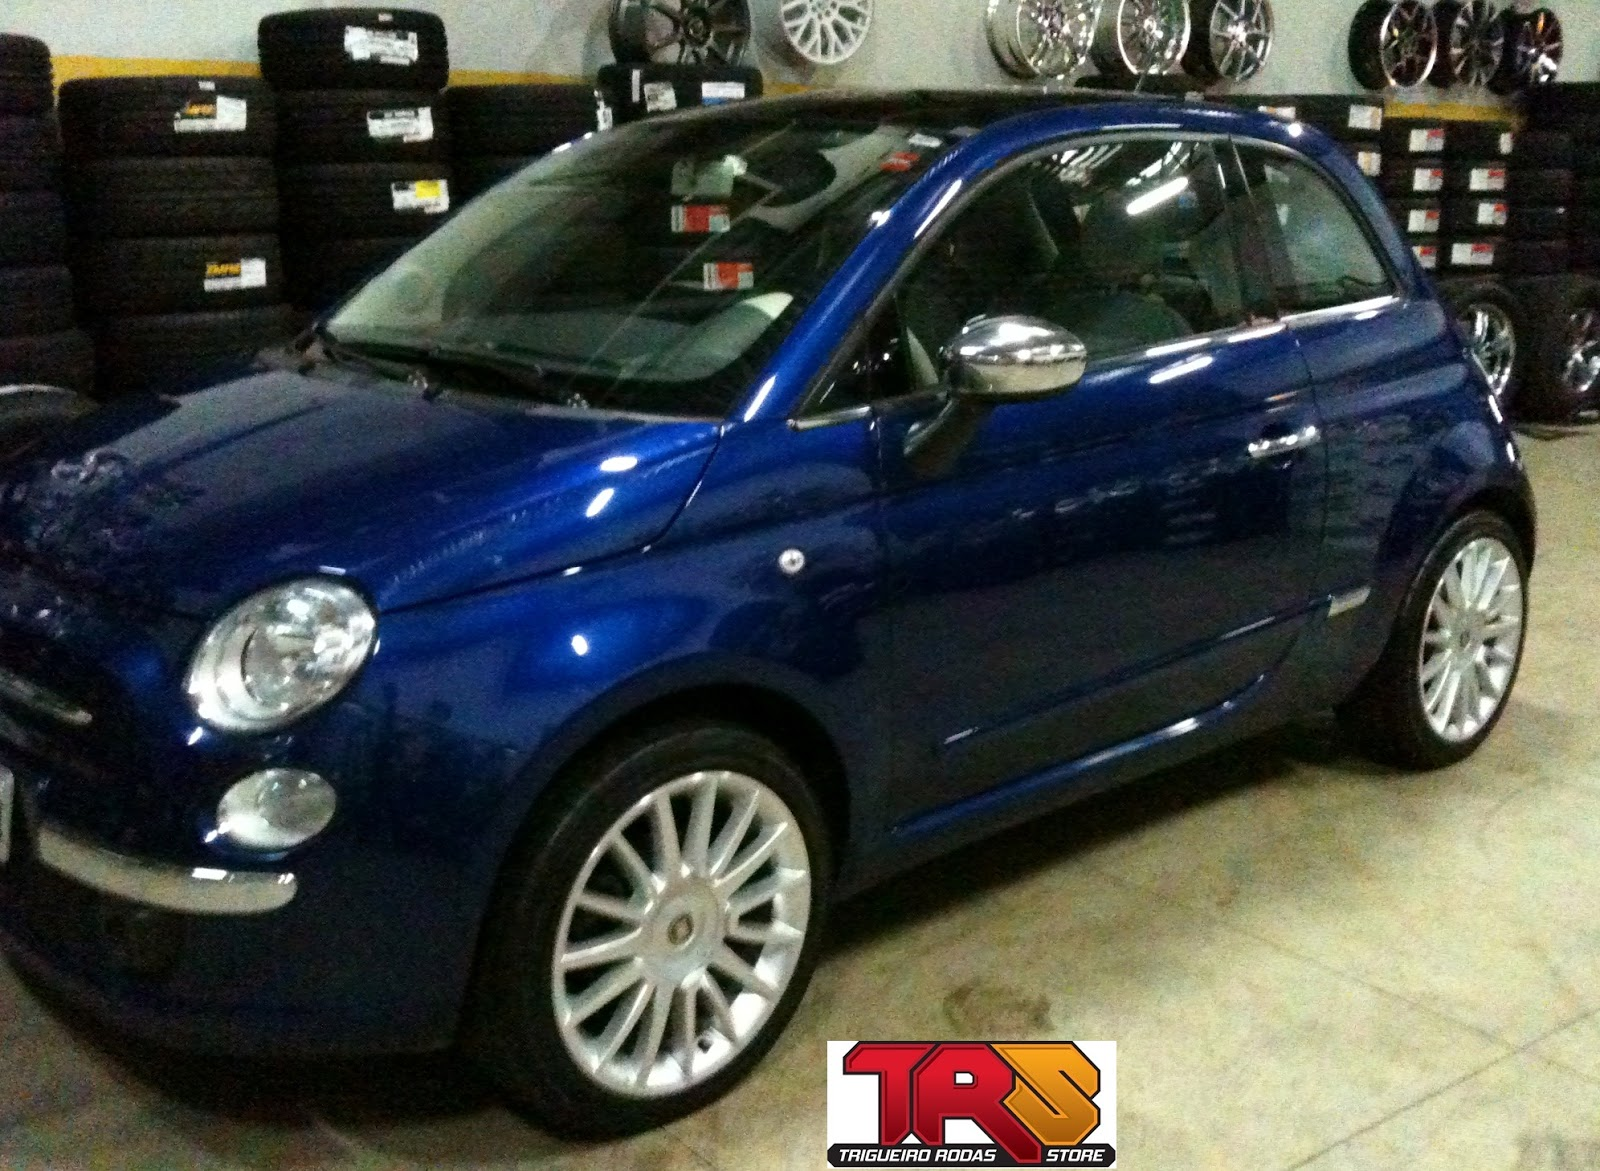 trigueiro rodas store 84 32233905 fiat 500 rodas fiat bravo. Black Bedroom Furniture Sets. Home Design Ideas